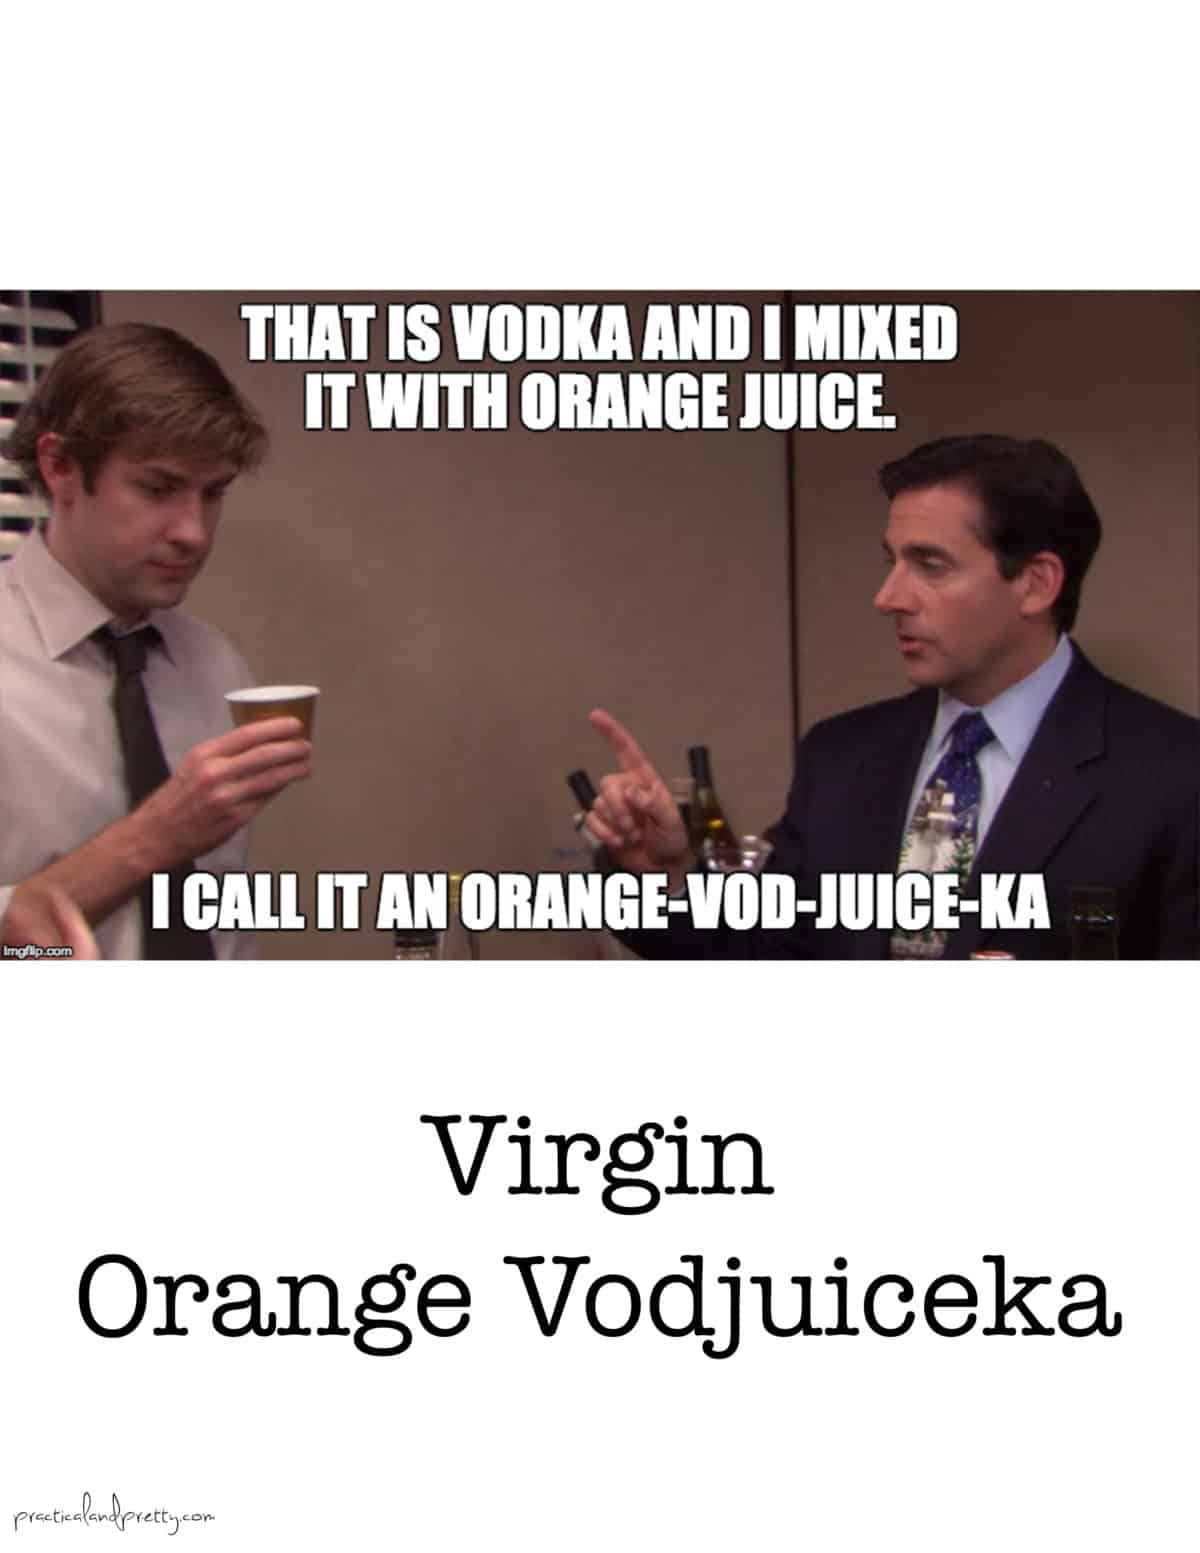 The Office Food Themed Memes - Practical and Pretty